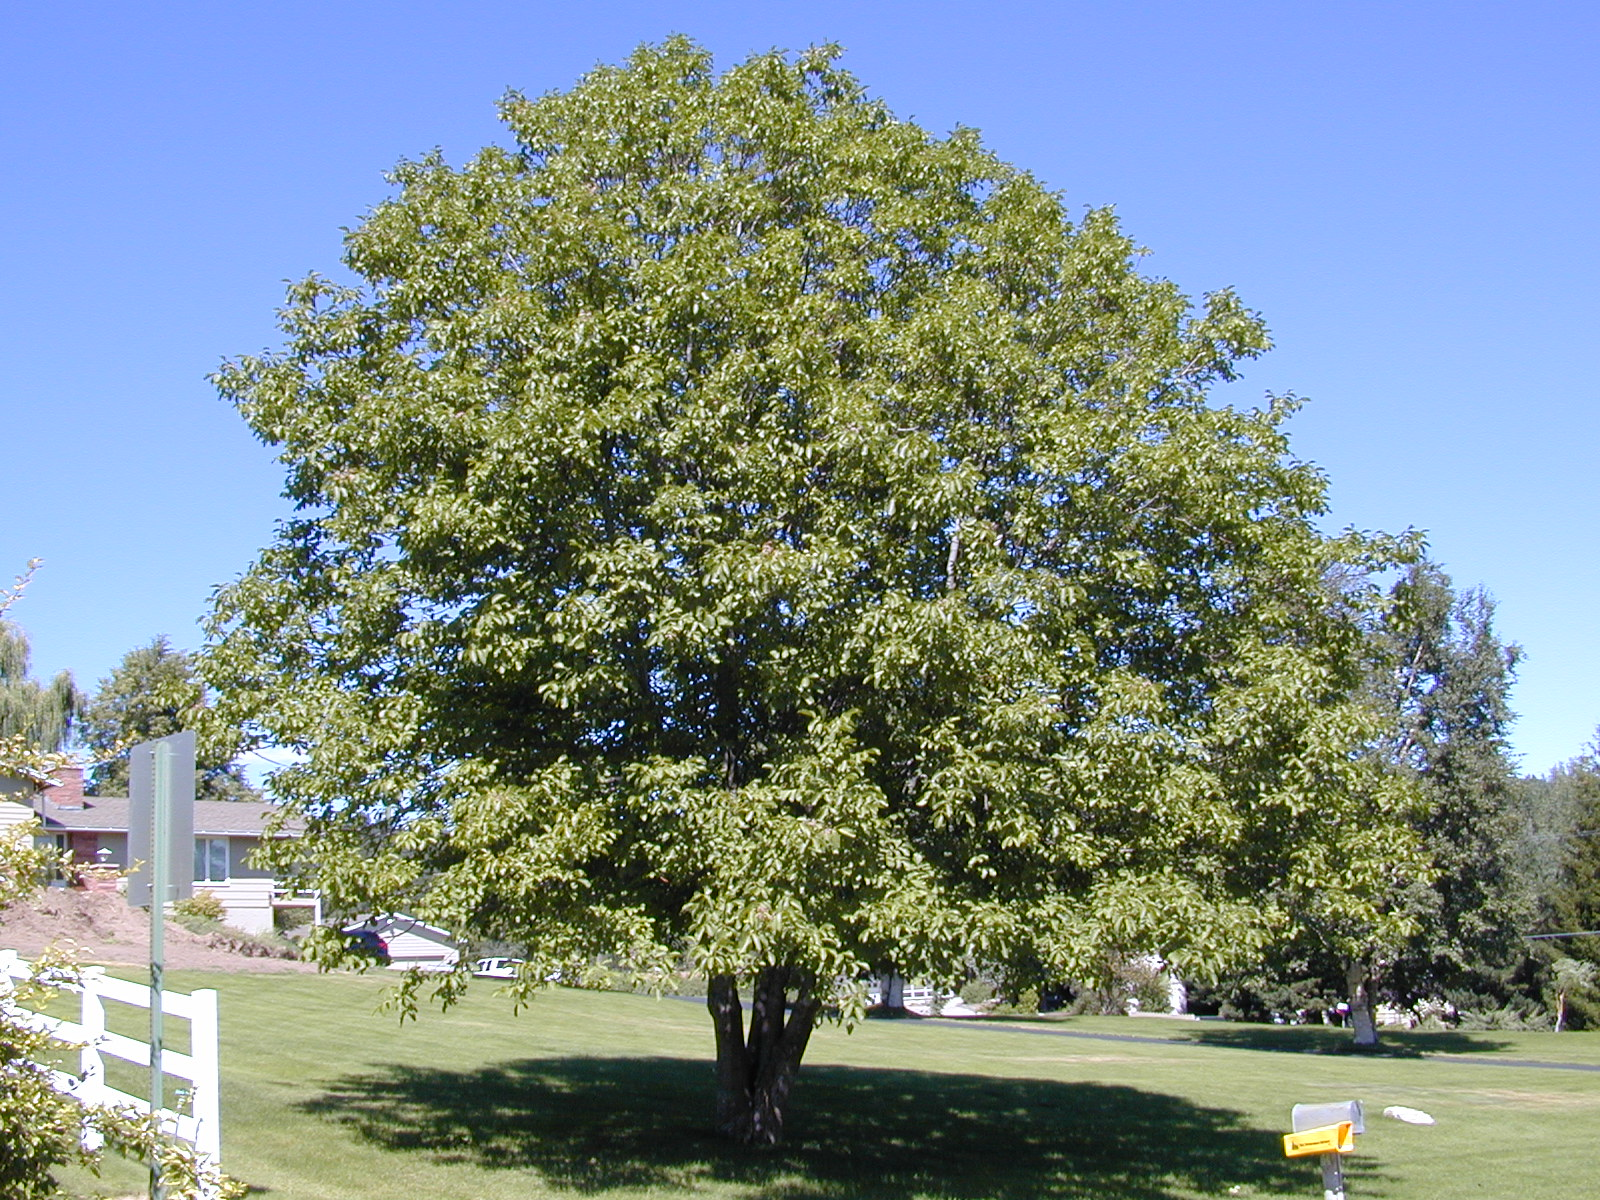 walnut shade mature personals Walnut trees make nice shade the best time to prune walnut trees is the later end of walnut tree pruning is an annual event even when the tree is mature.